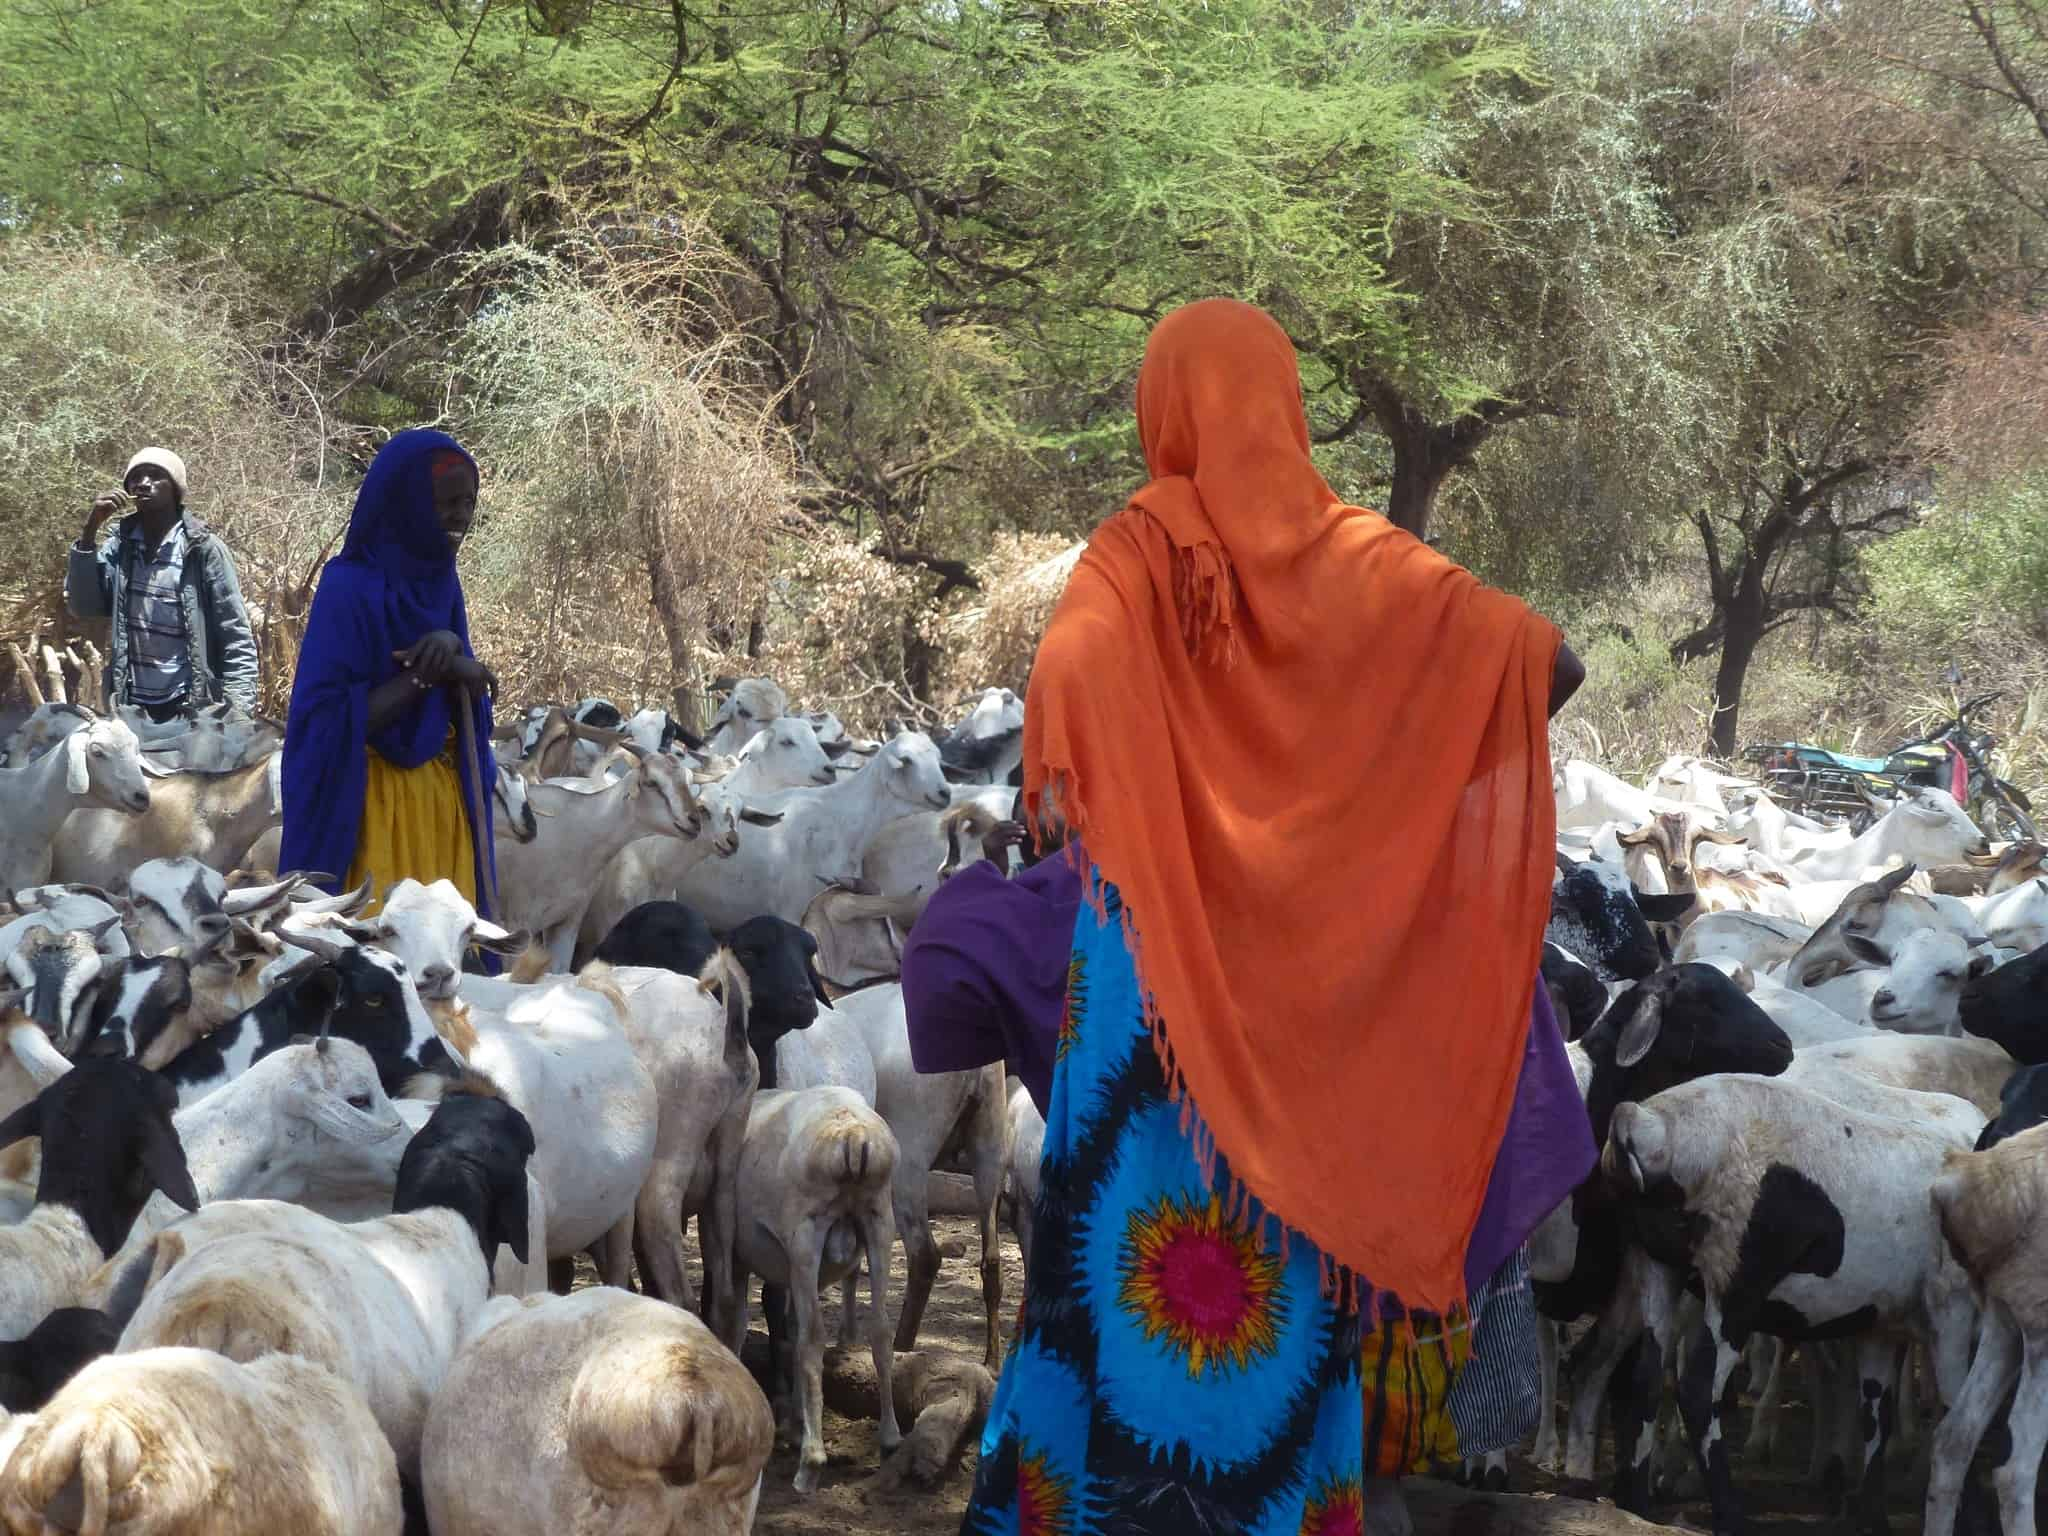 Boran women with sheep and goats at a traditional deep well water source, Garba Tulla, Isiolo, Kenya (photo credit: ILRI/Fiona Flintan).